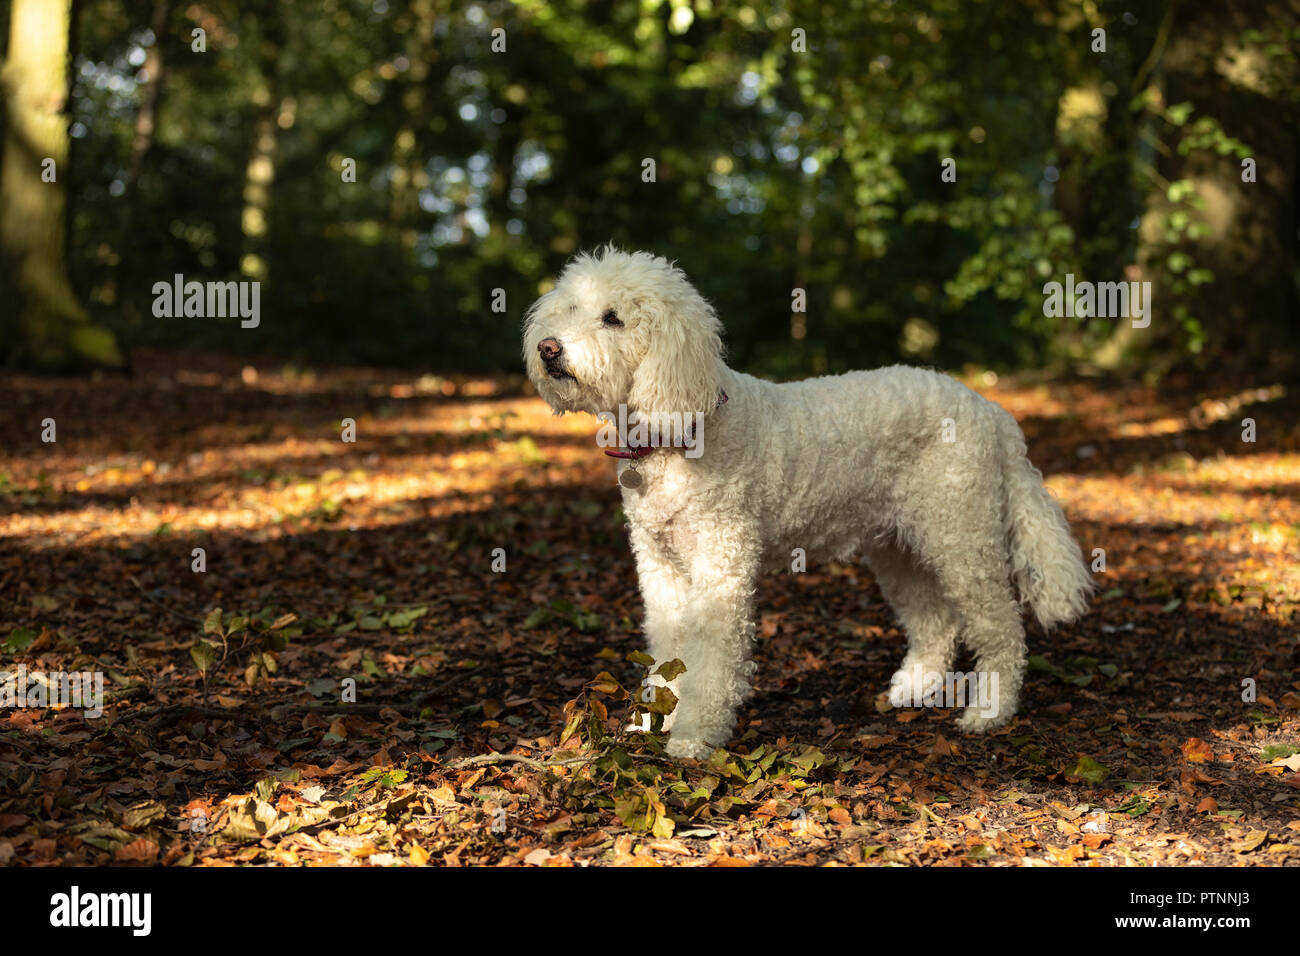 White labradoodle dog pictured outdoors - Stock Image